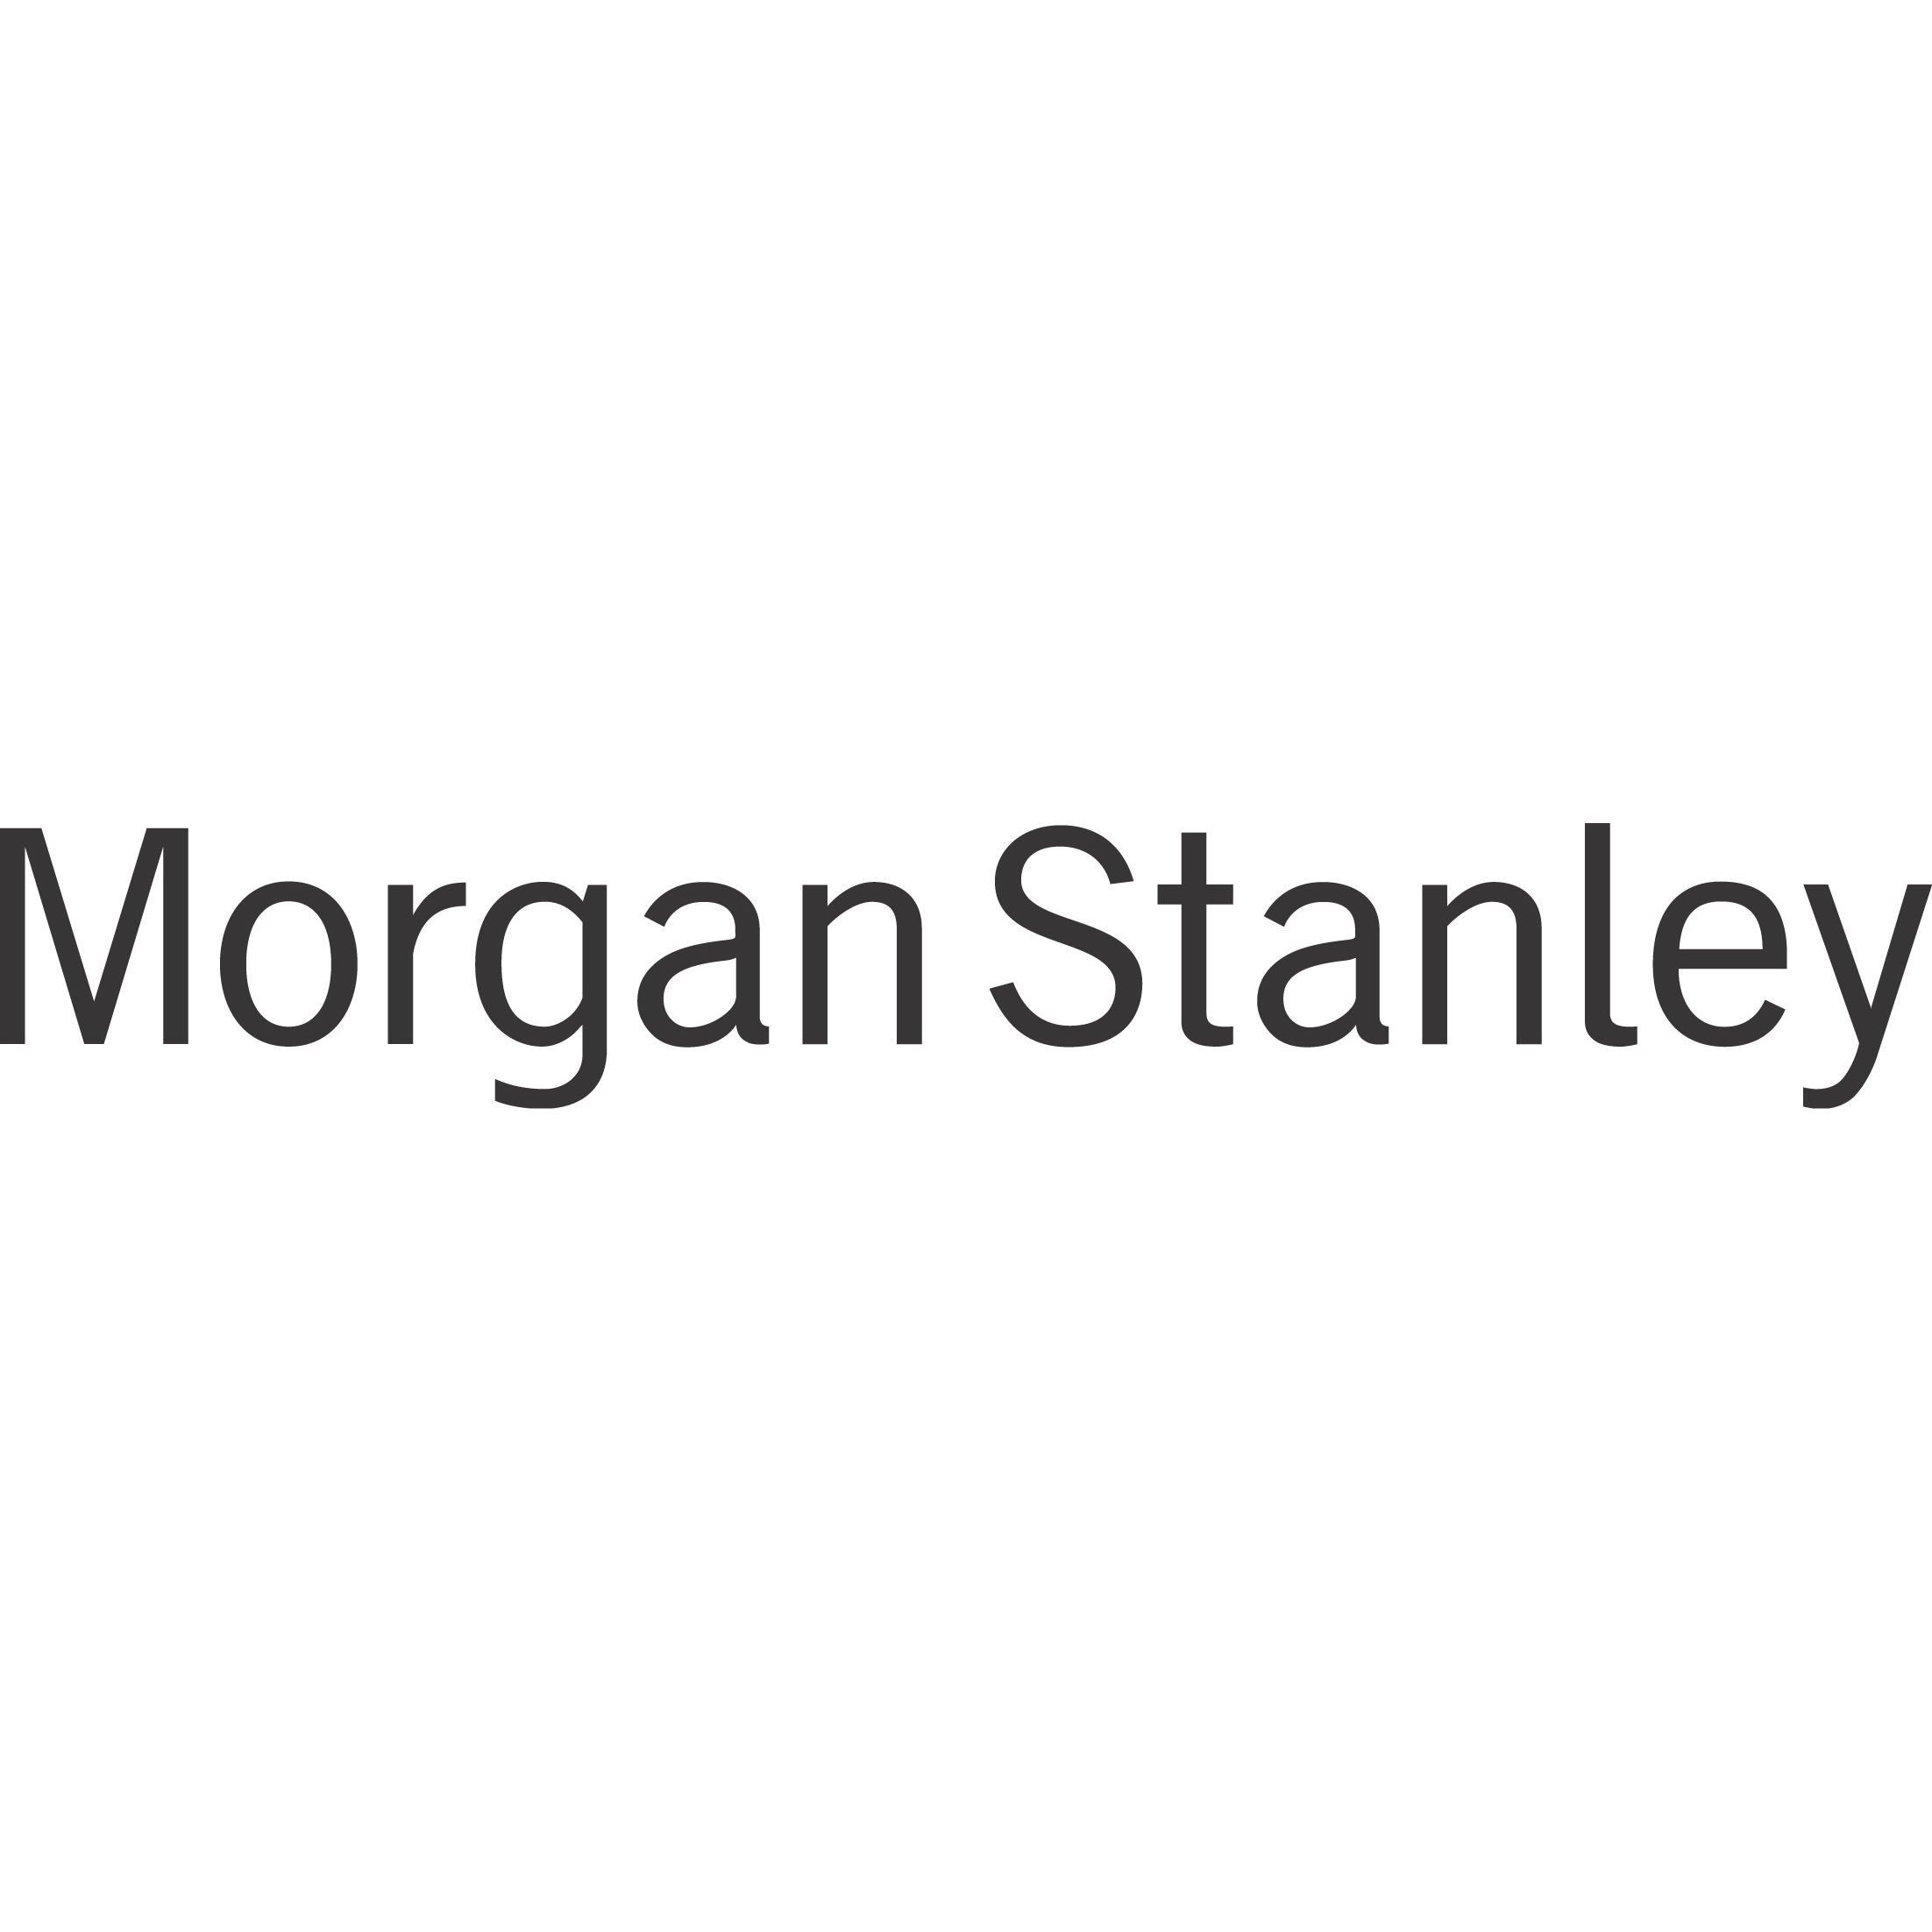 Anny Shen - Morgan Stanley | Financial Advisor in Pasadena,California